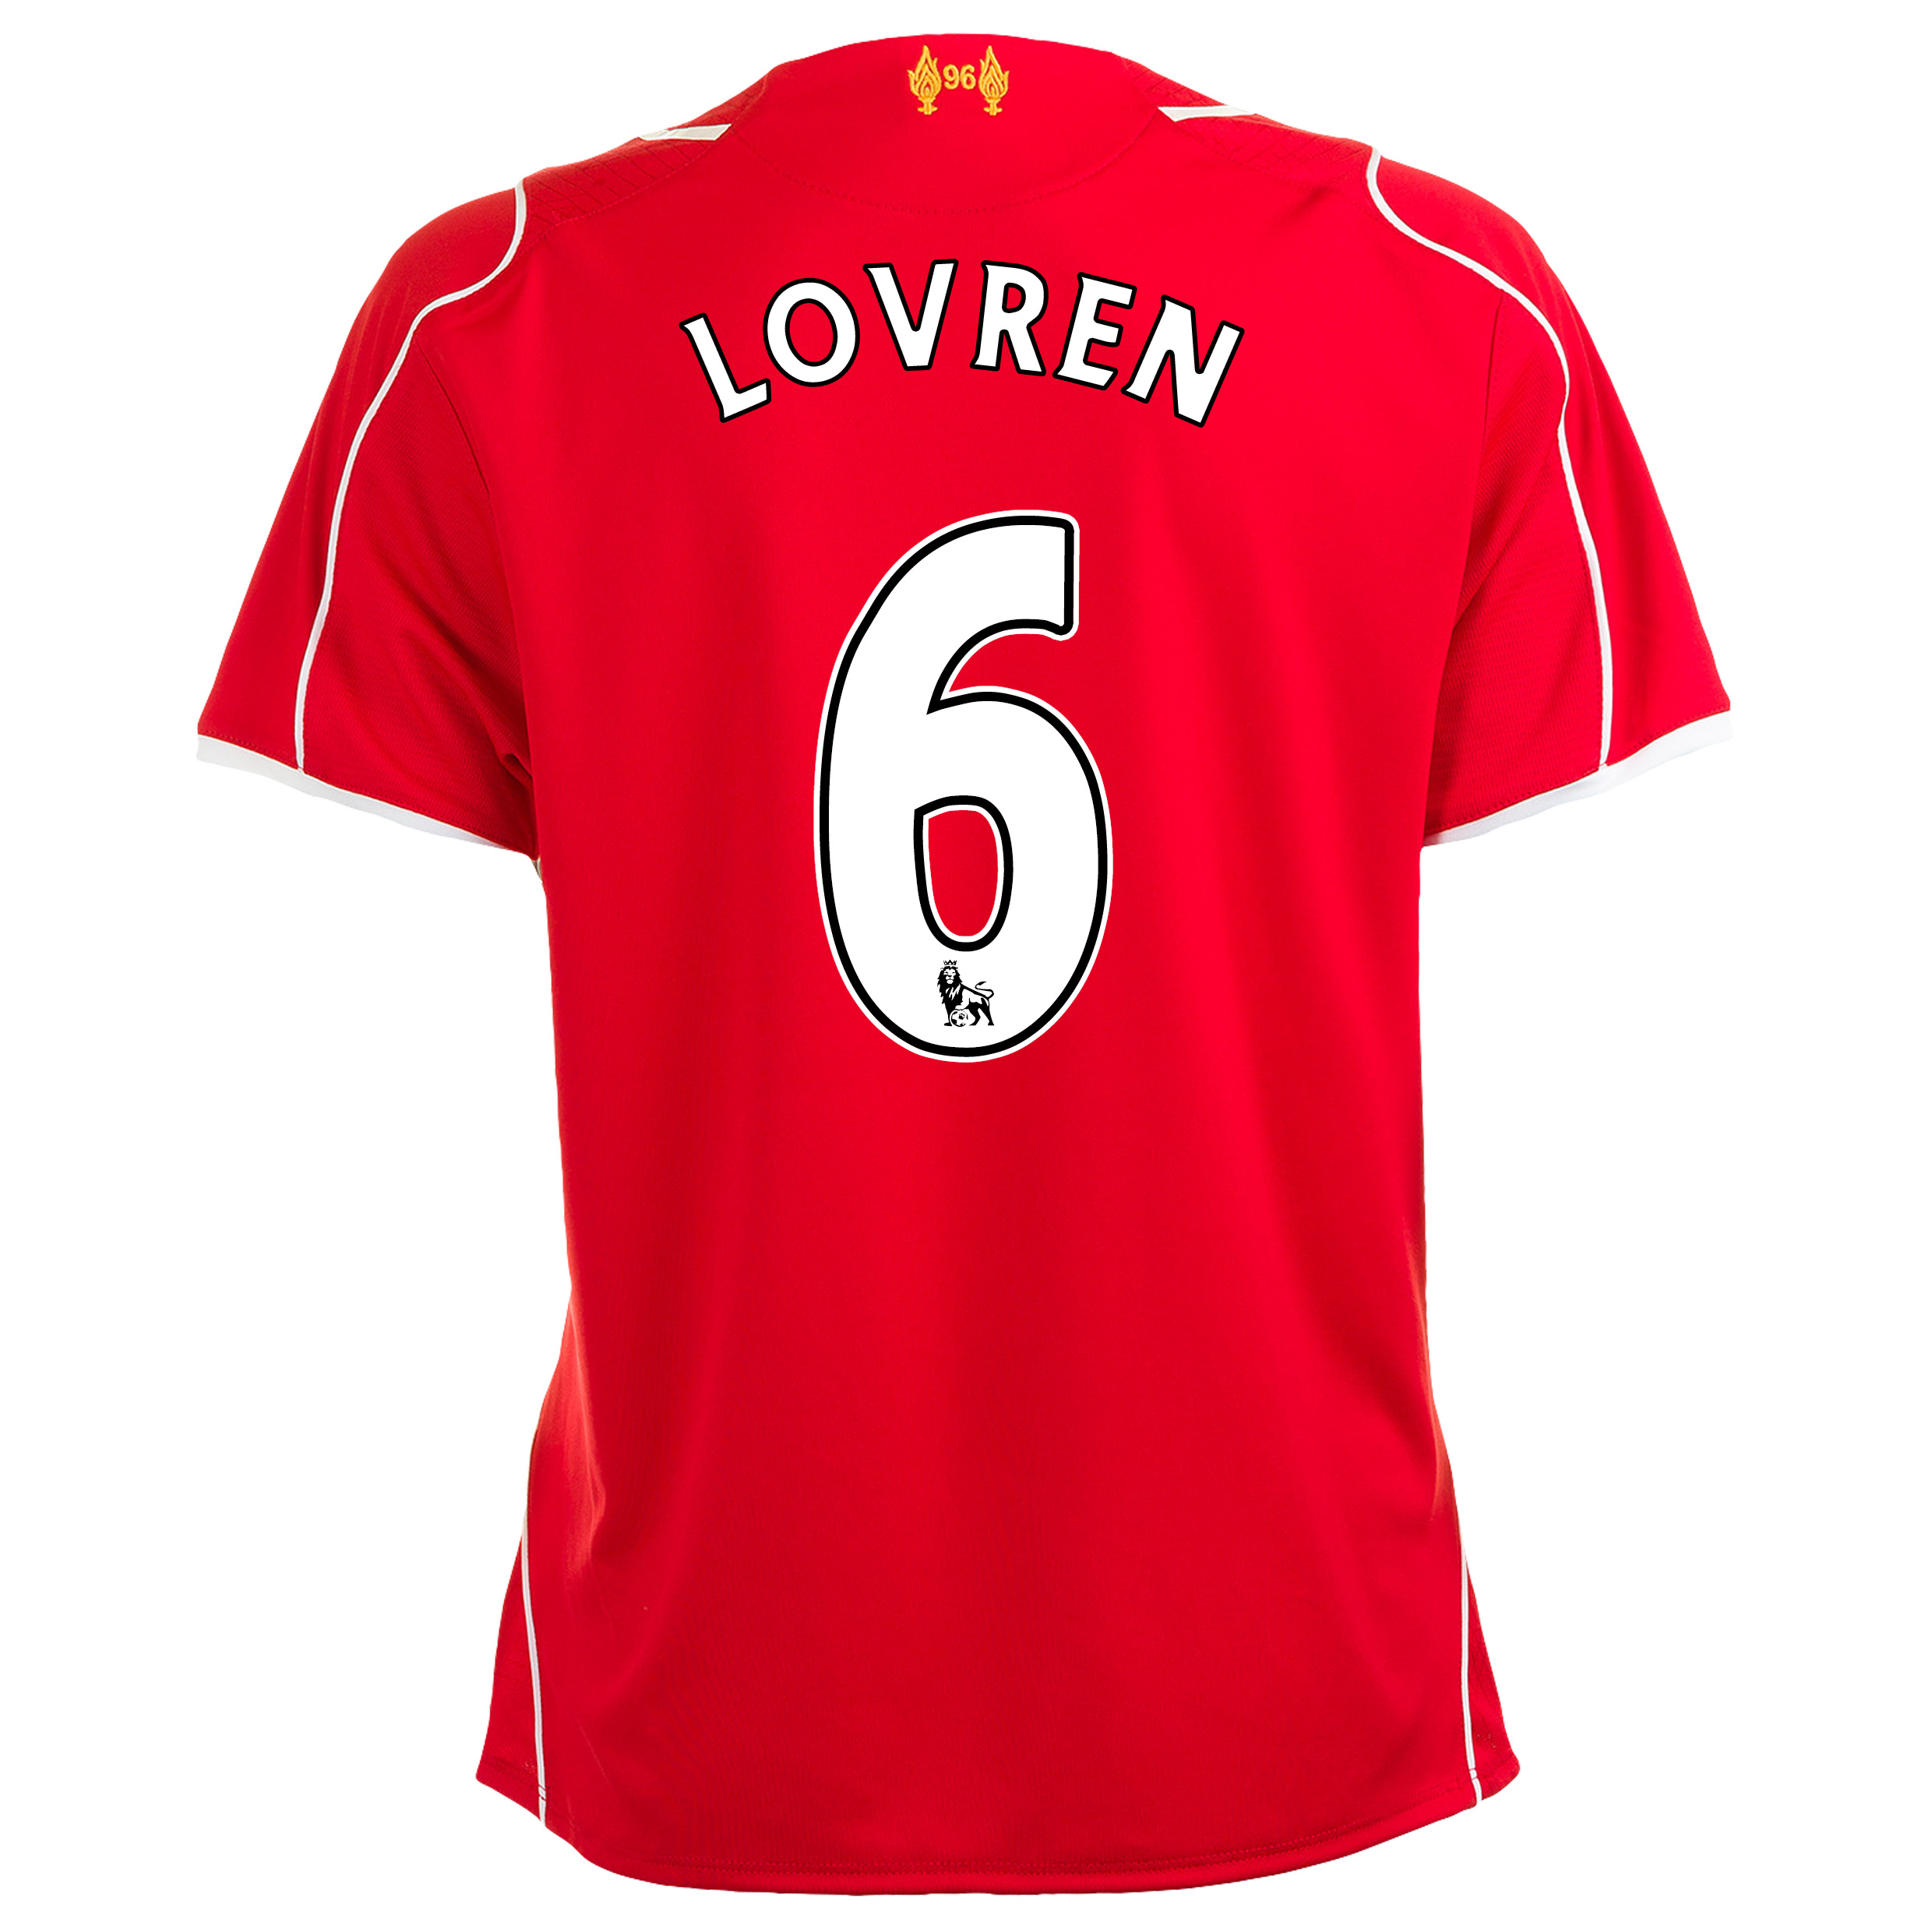 Liverpool Home Shirt 2014/15 Womens with Lovren 6 printing